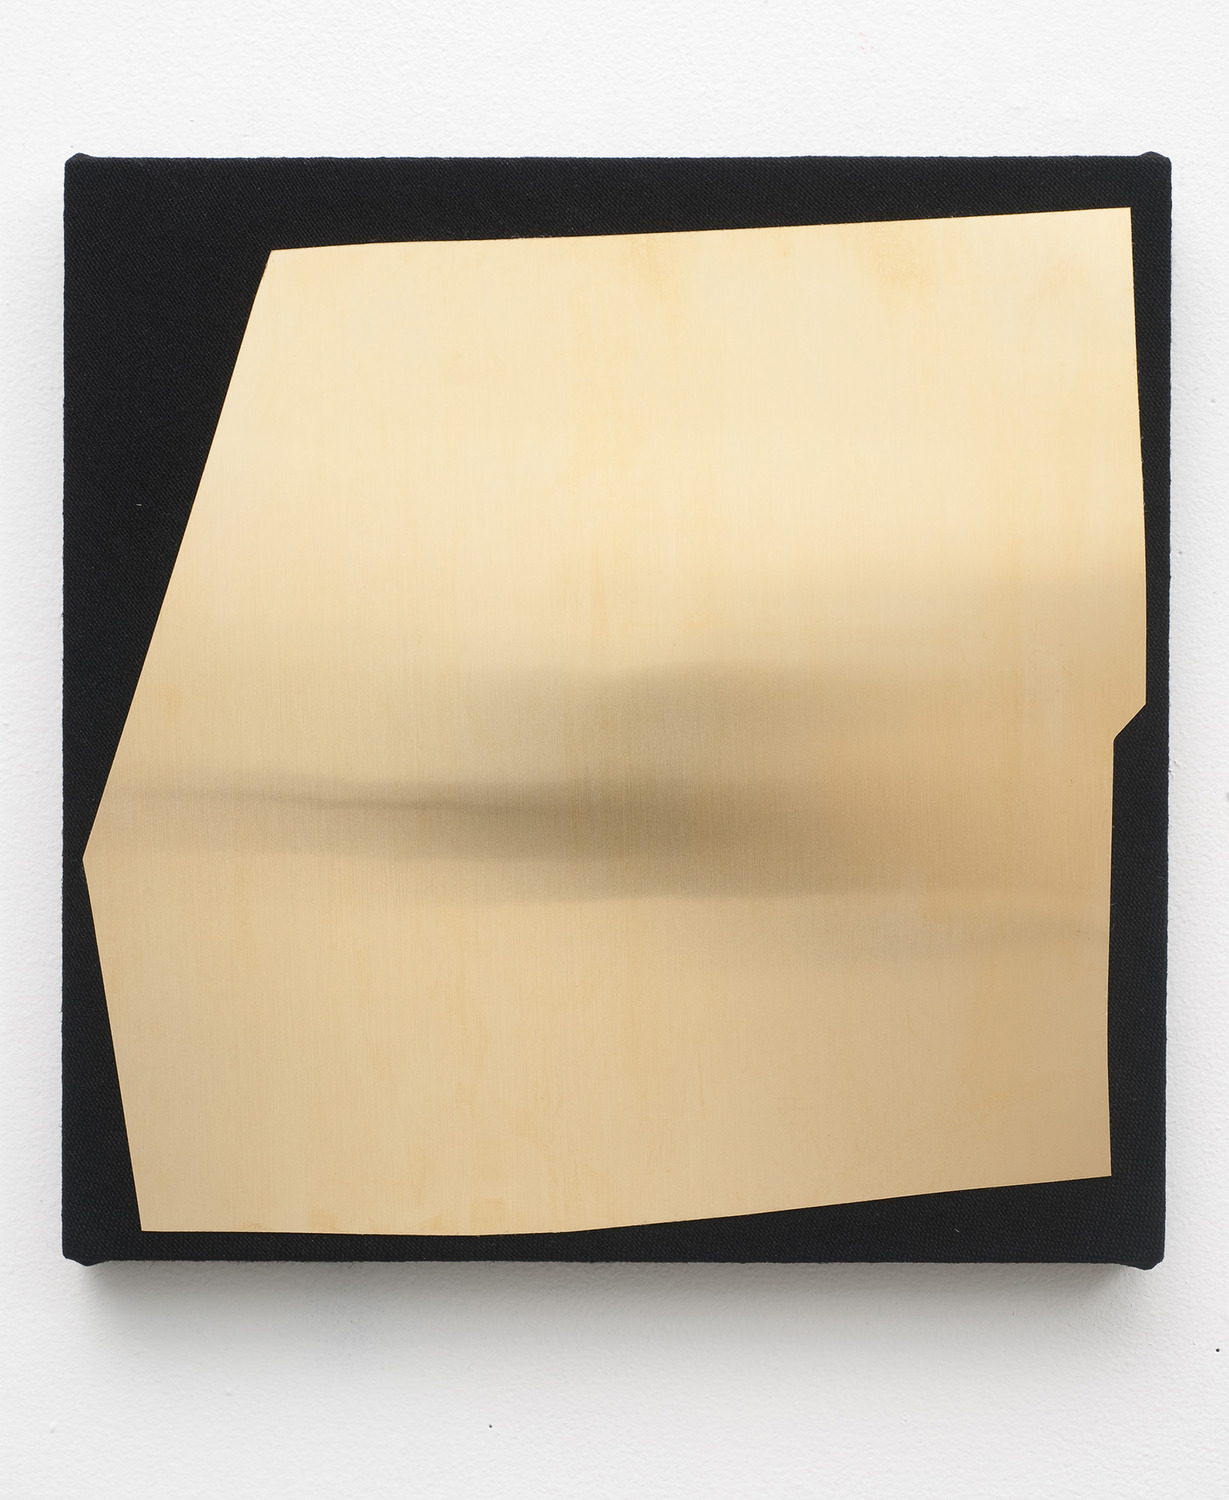 Brass No.1, 2011, Brass on dyed linen, 35.5 x 35.5 cm